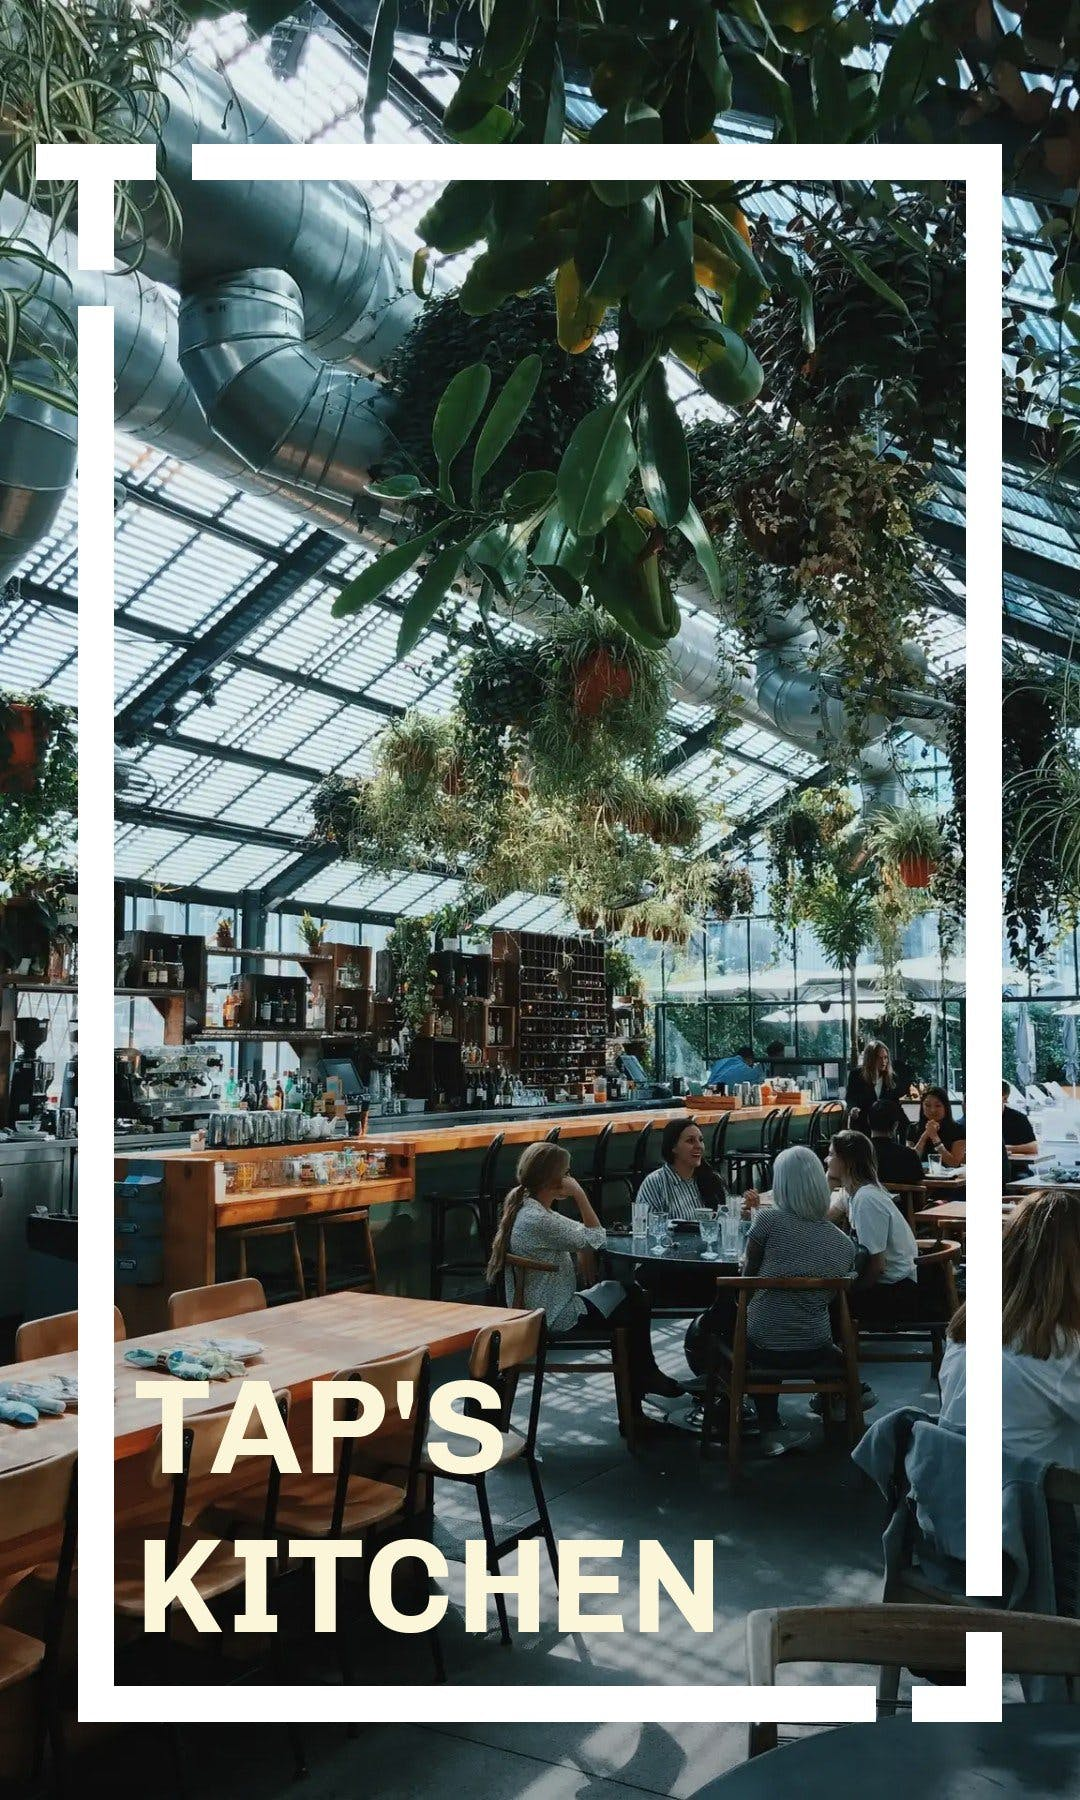 Tap's kitchen Menu cover